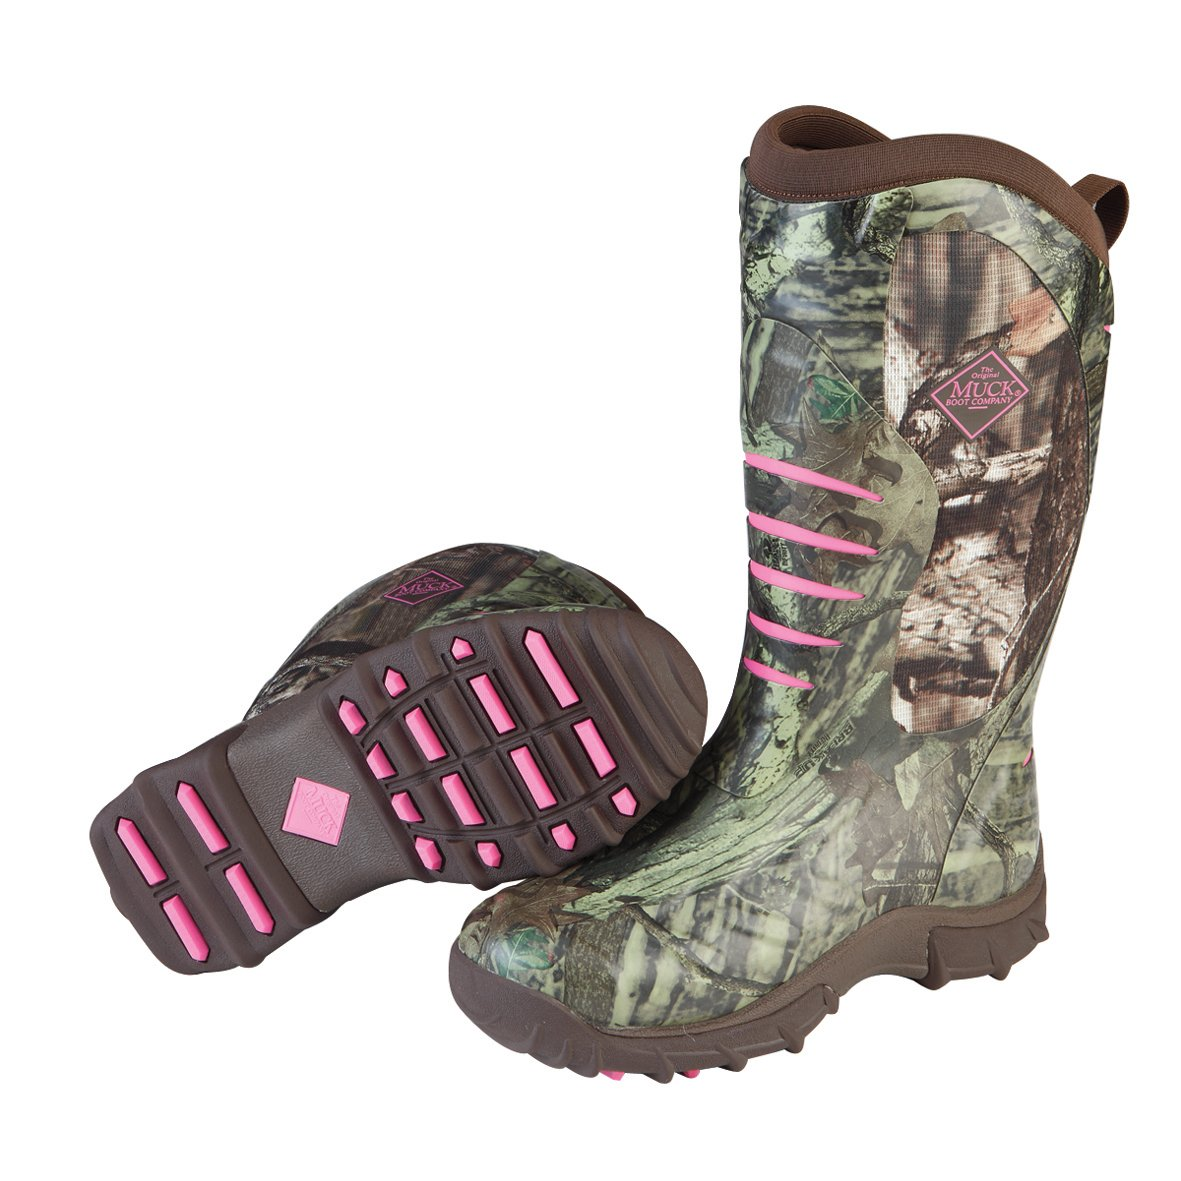 Muck Pursuit Stealth Rubber Insulated Women's Hunting Boots by Muck Boot